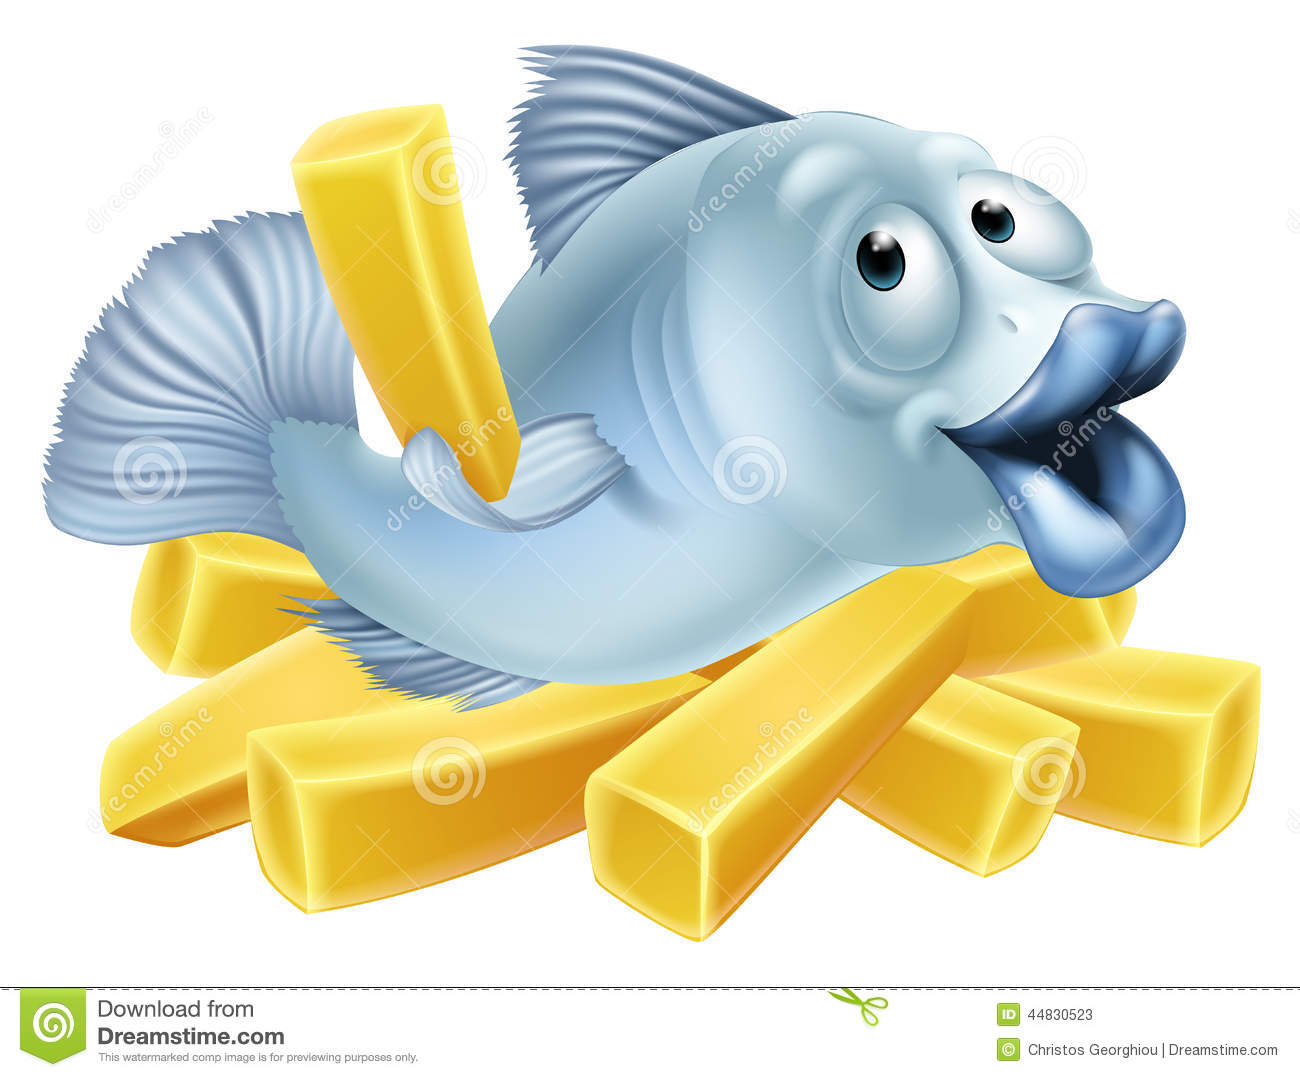 fish and chips clipart - photo #13